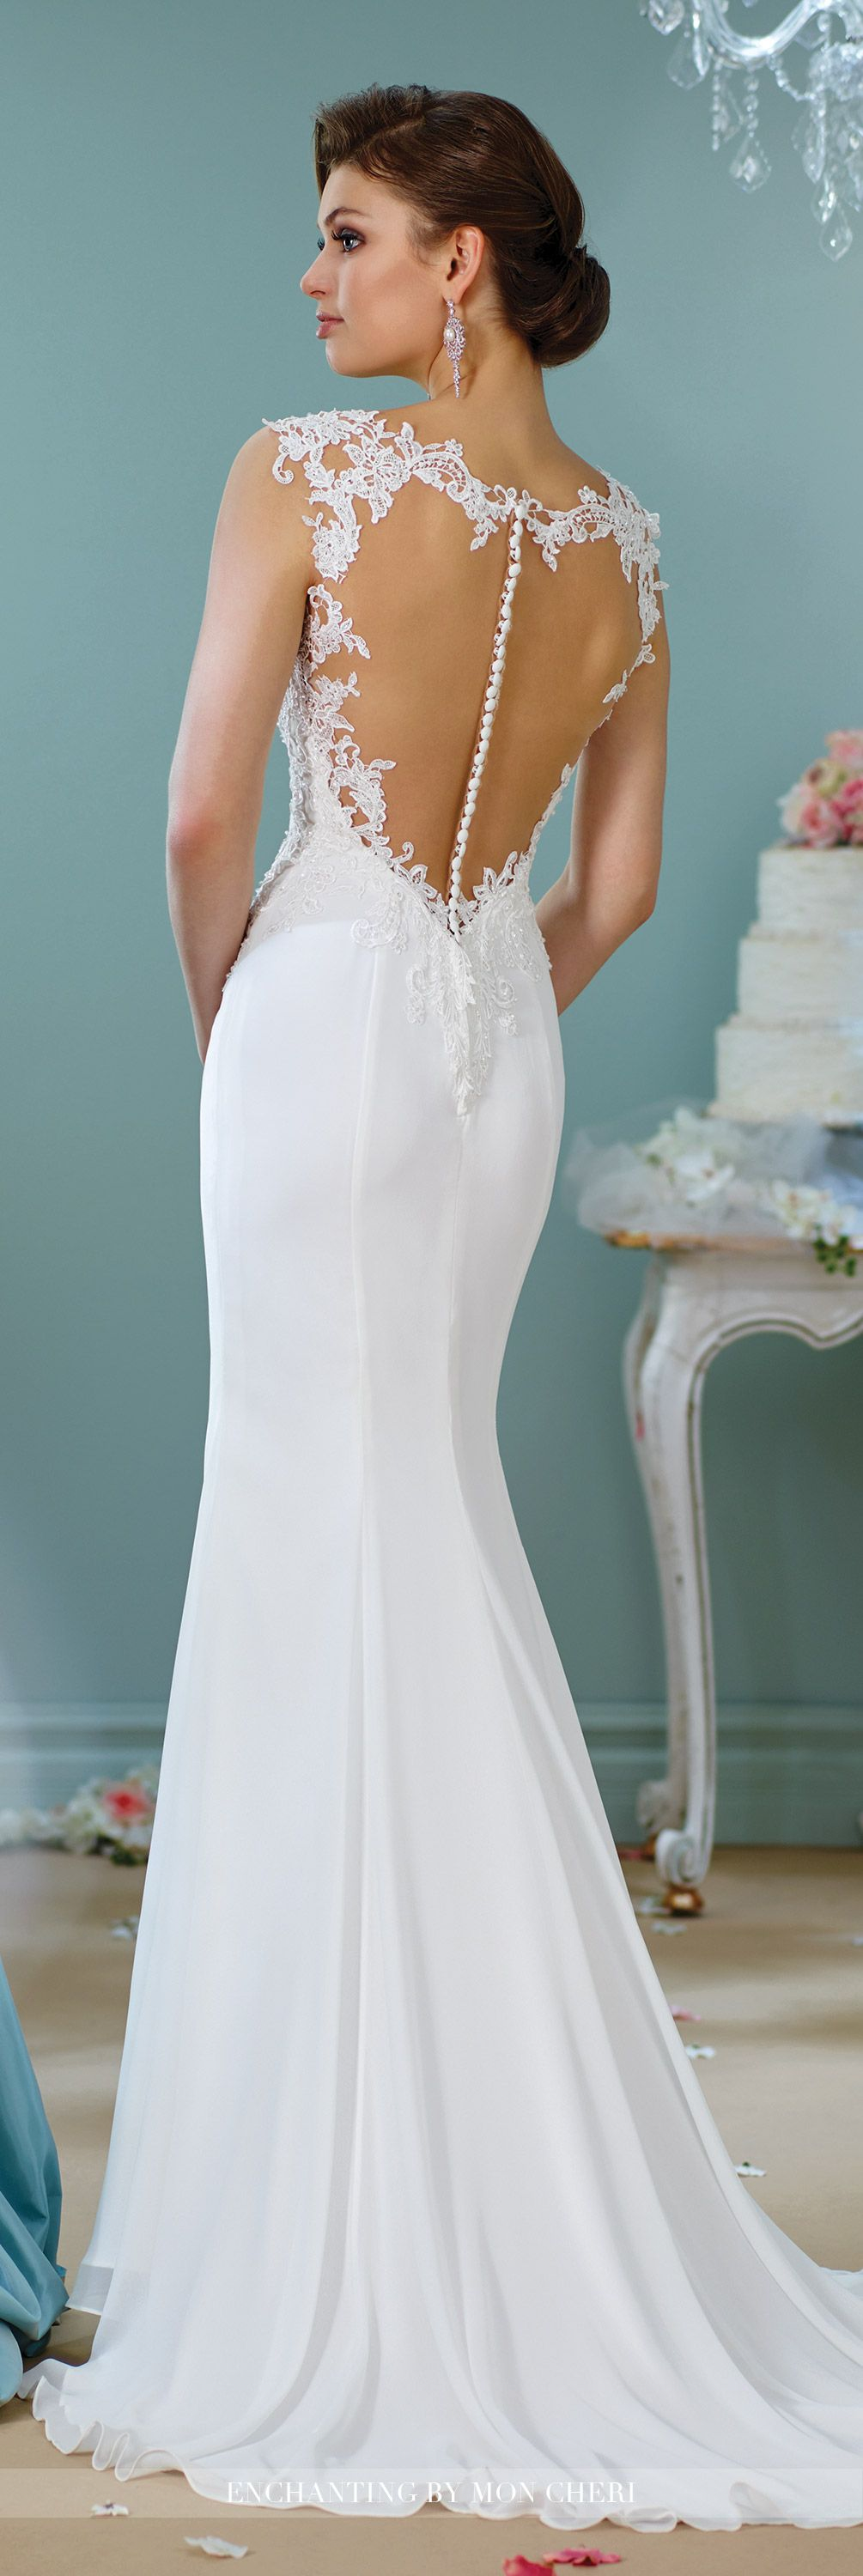 Beaded Cap Sleeve Wedding Dress-216152- Enchanting by Mon Cheri ...